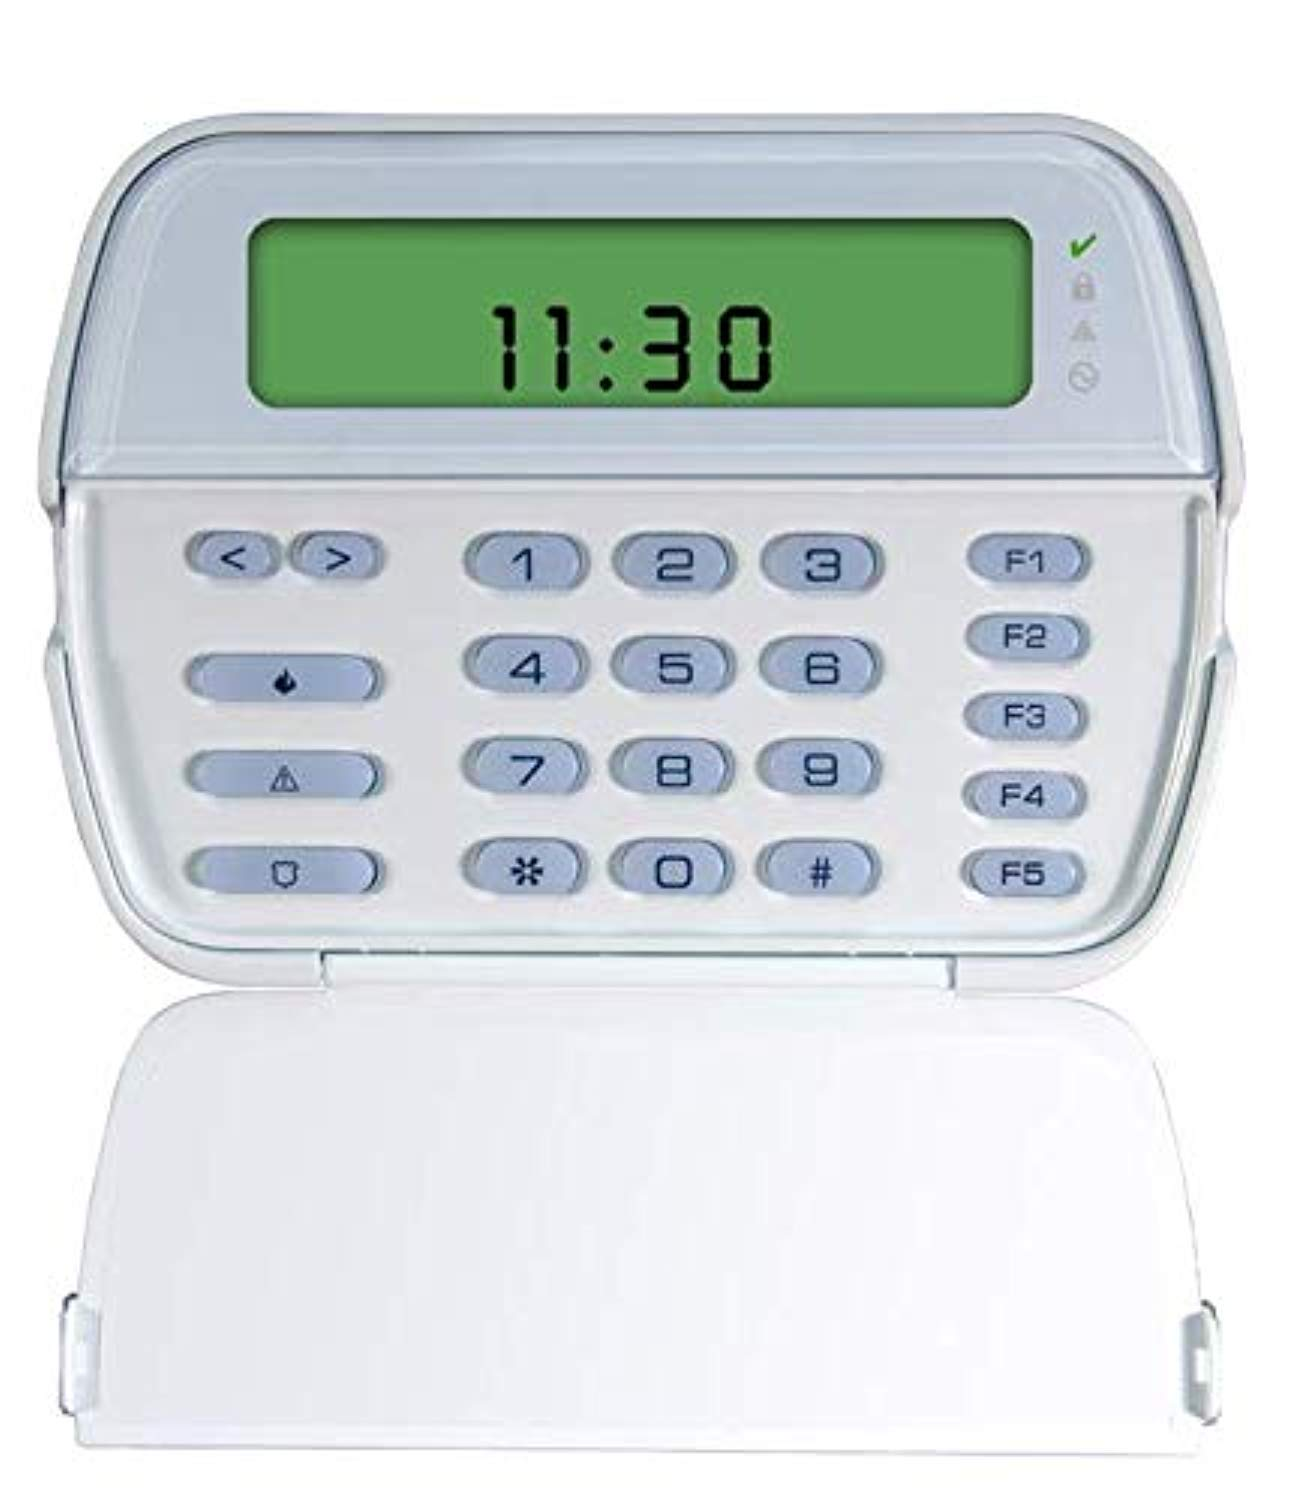 TYCO SAFETY PRODUCTS DSC RFK5500ENG 64 zone full message LCD keypad